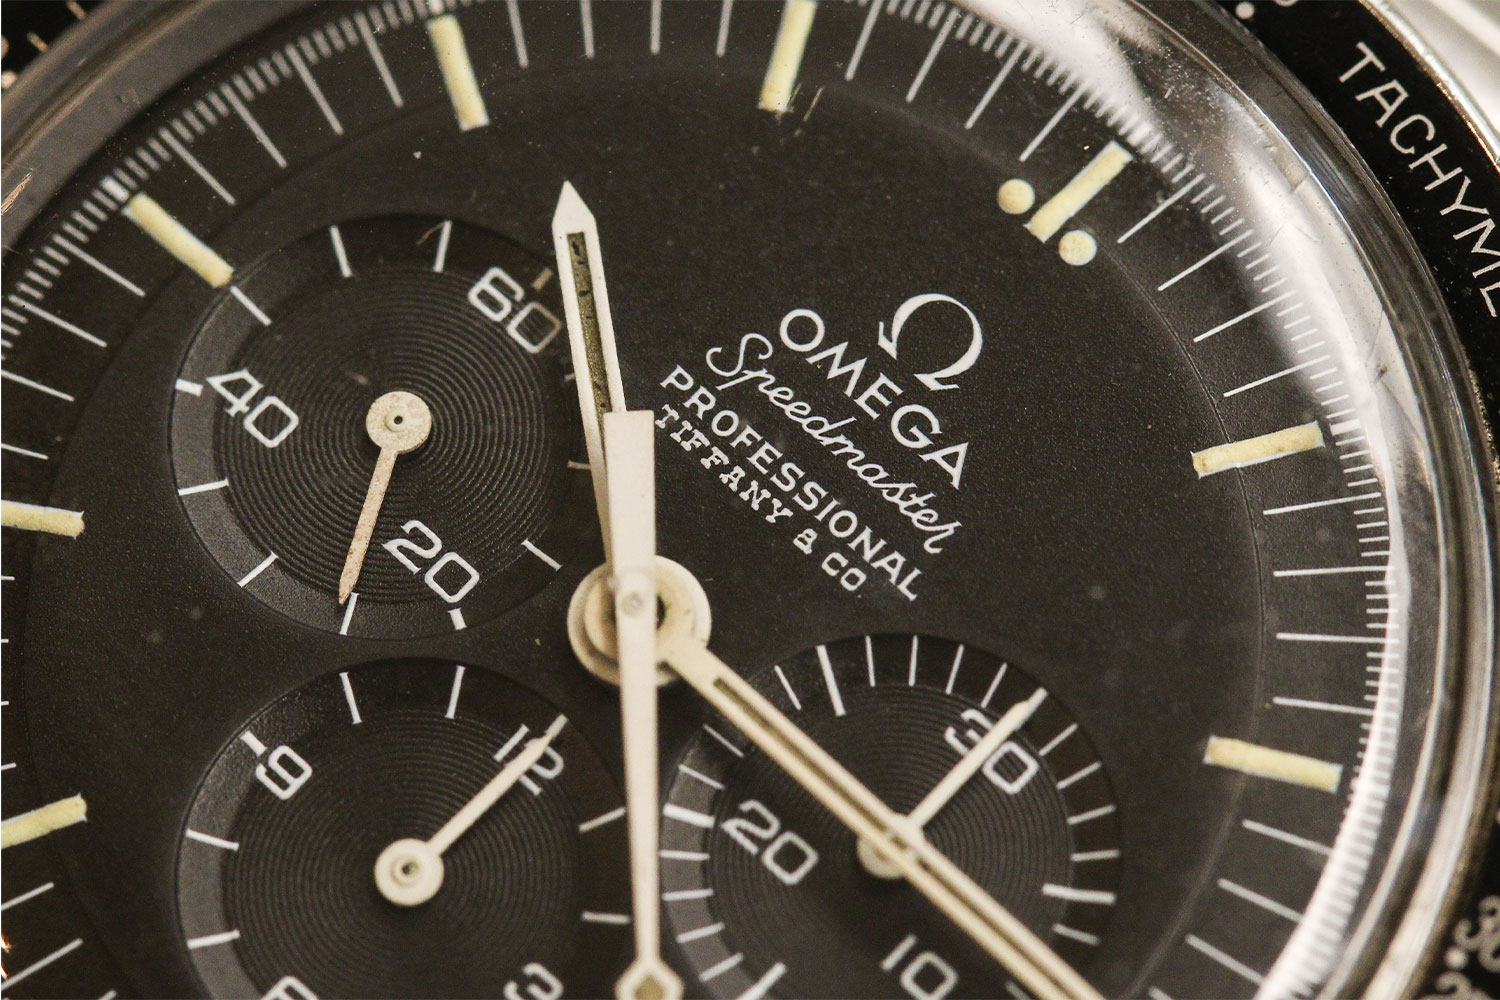 Lot 817 – Omega Speedmaster ref. 145.022 with Tiffany dia